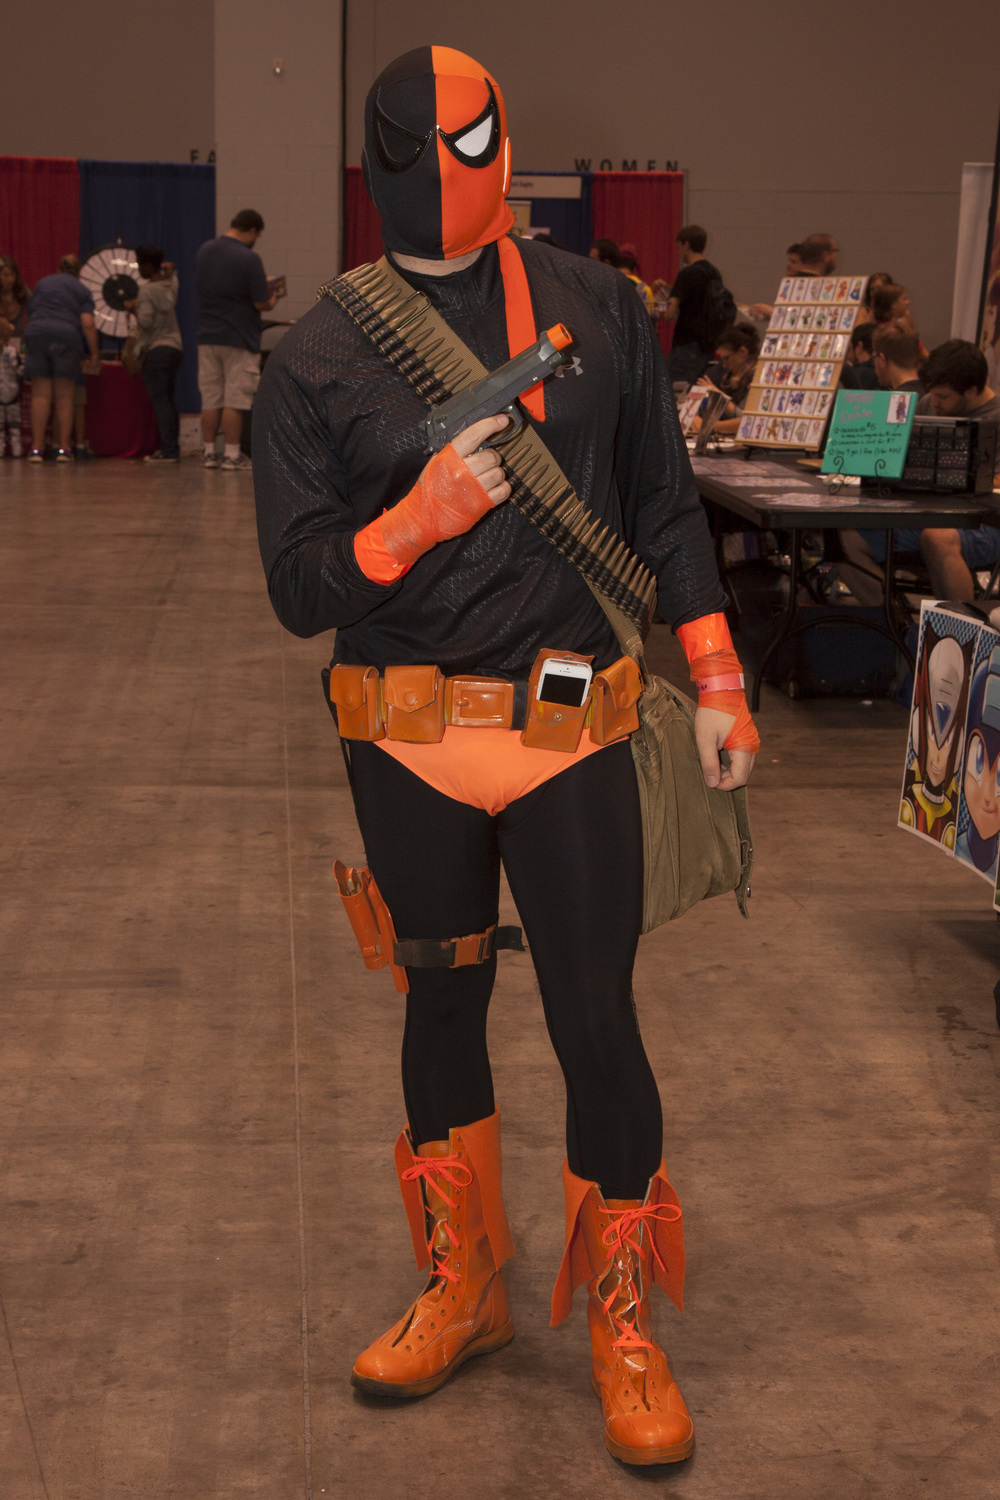 Cincinnati Comic Expo 2014 - 33.jpg